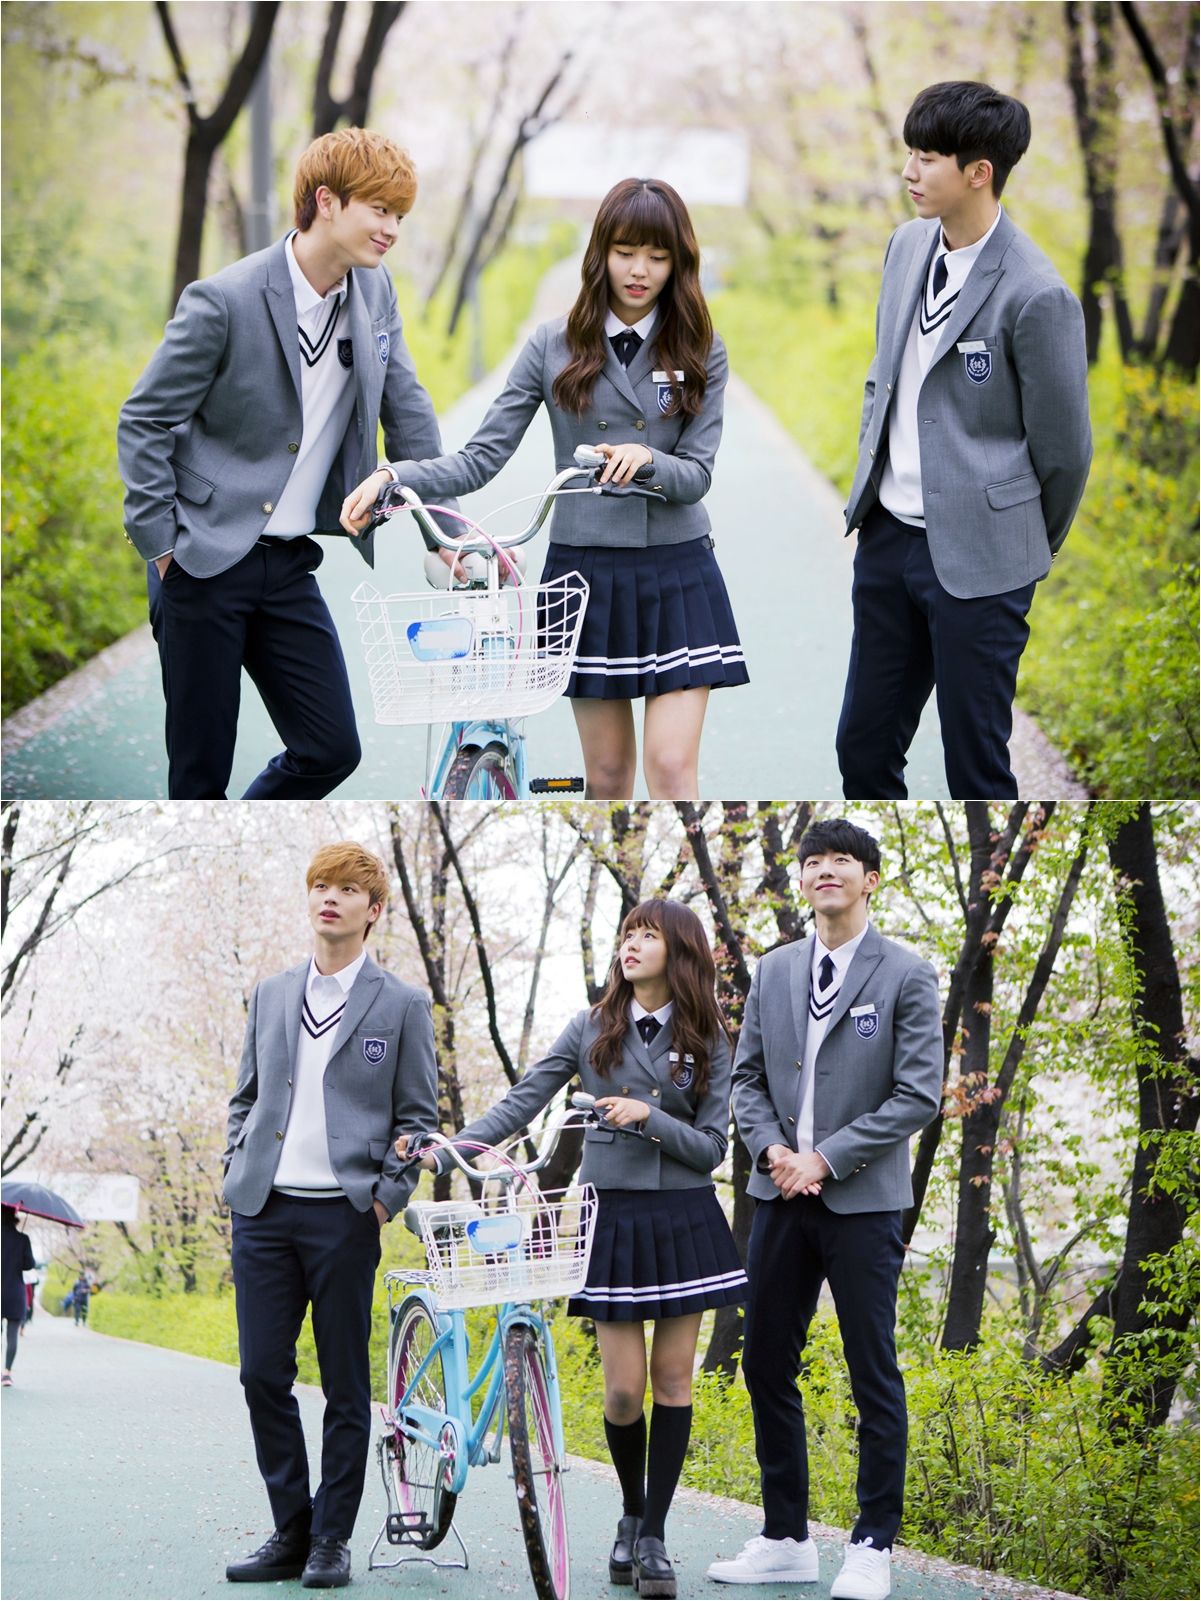 Who are you : School 2015 vostfr